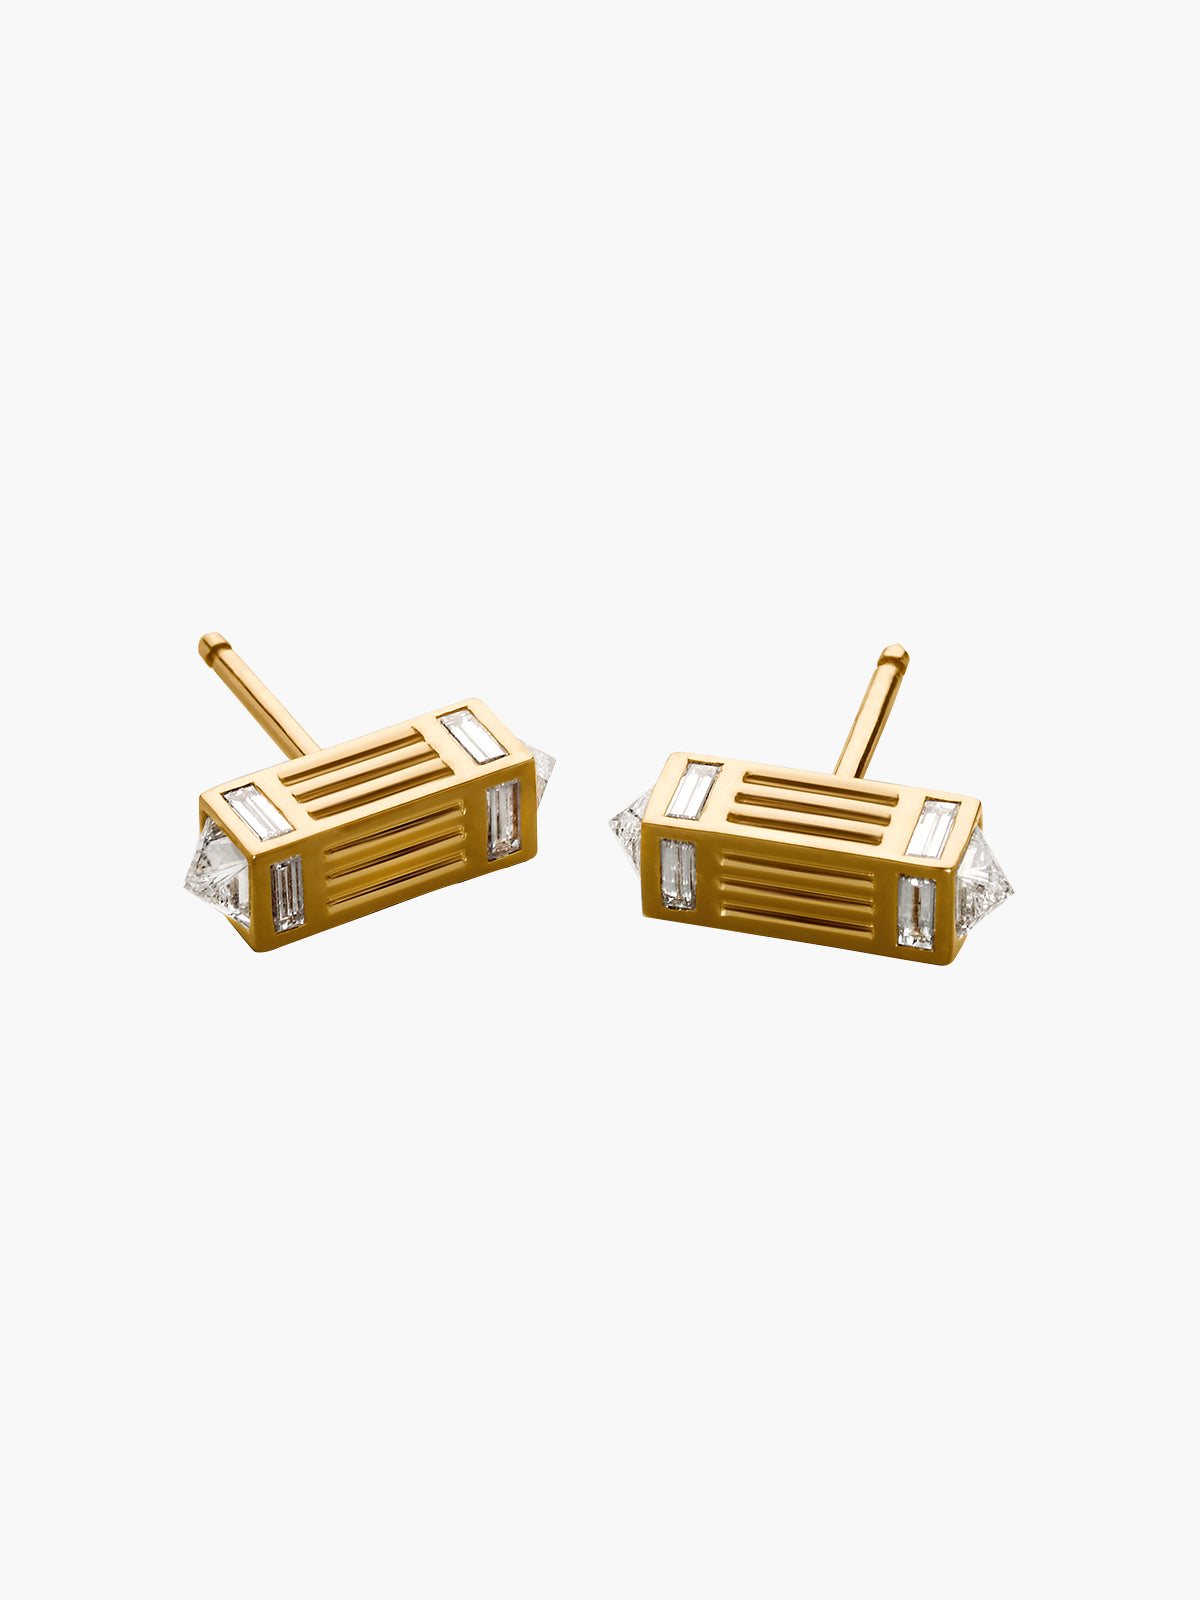 Fluted Capstone Bar Stud Earrings